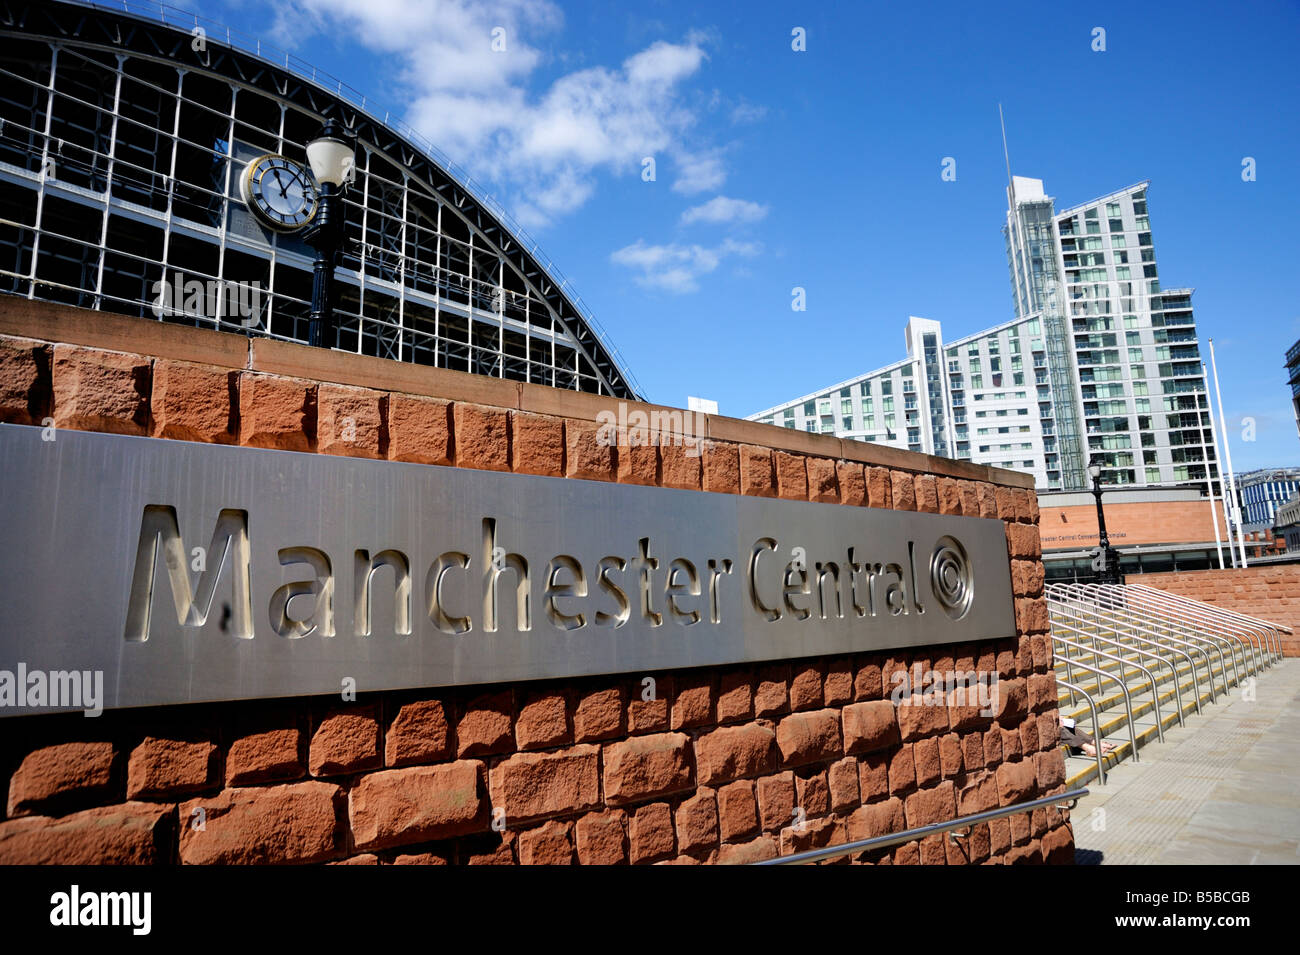 Gmex Centre, Manchester Central, Manchester, England, Europe - Stock Image